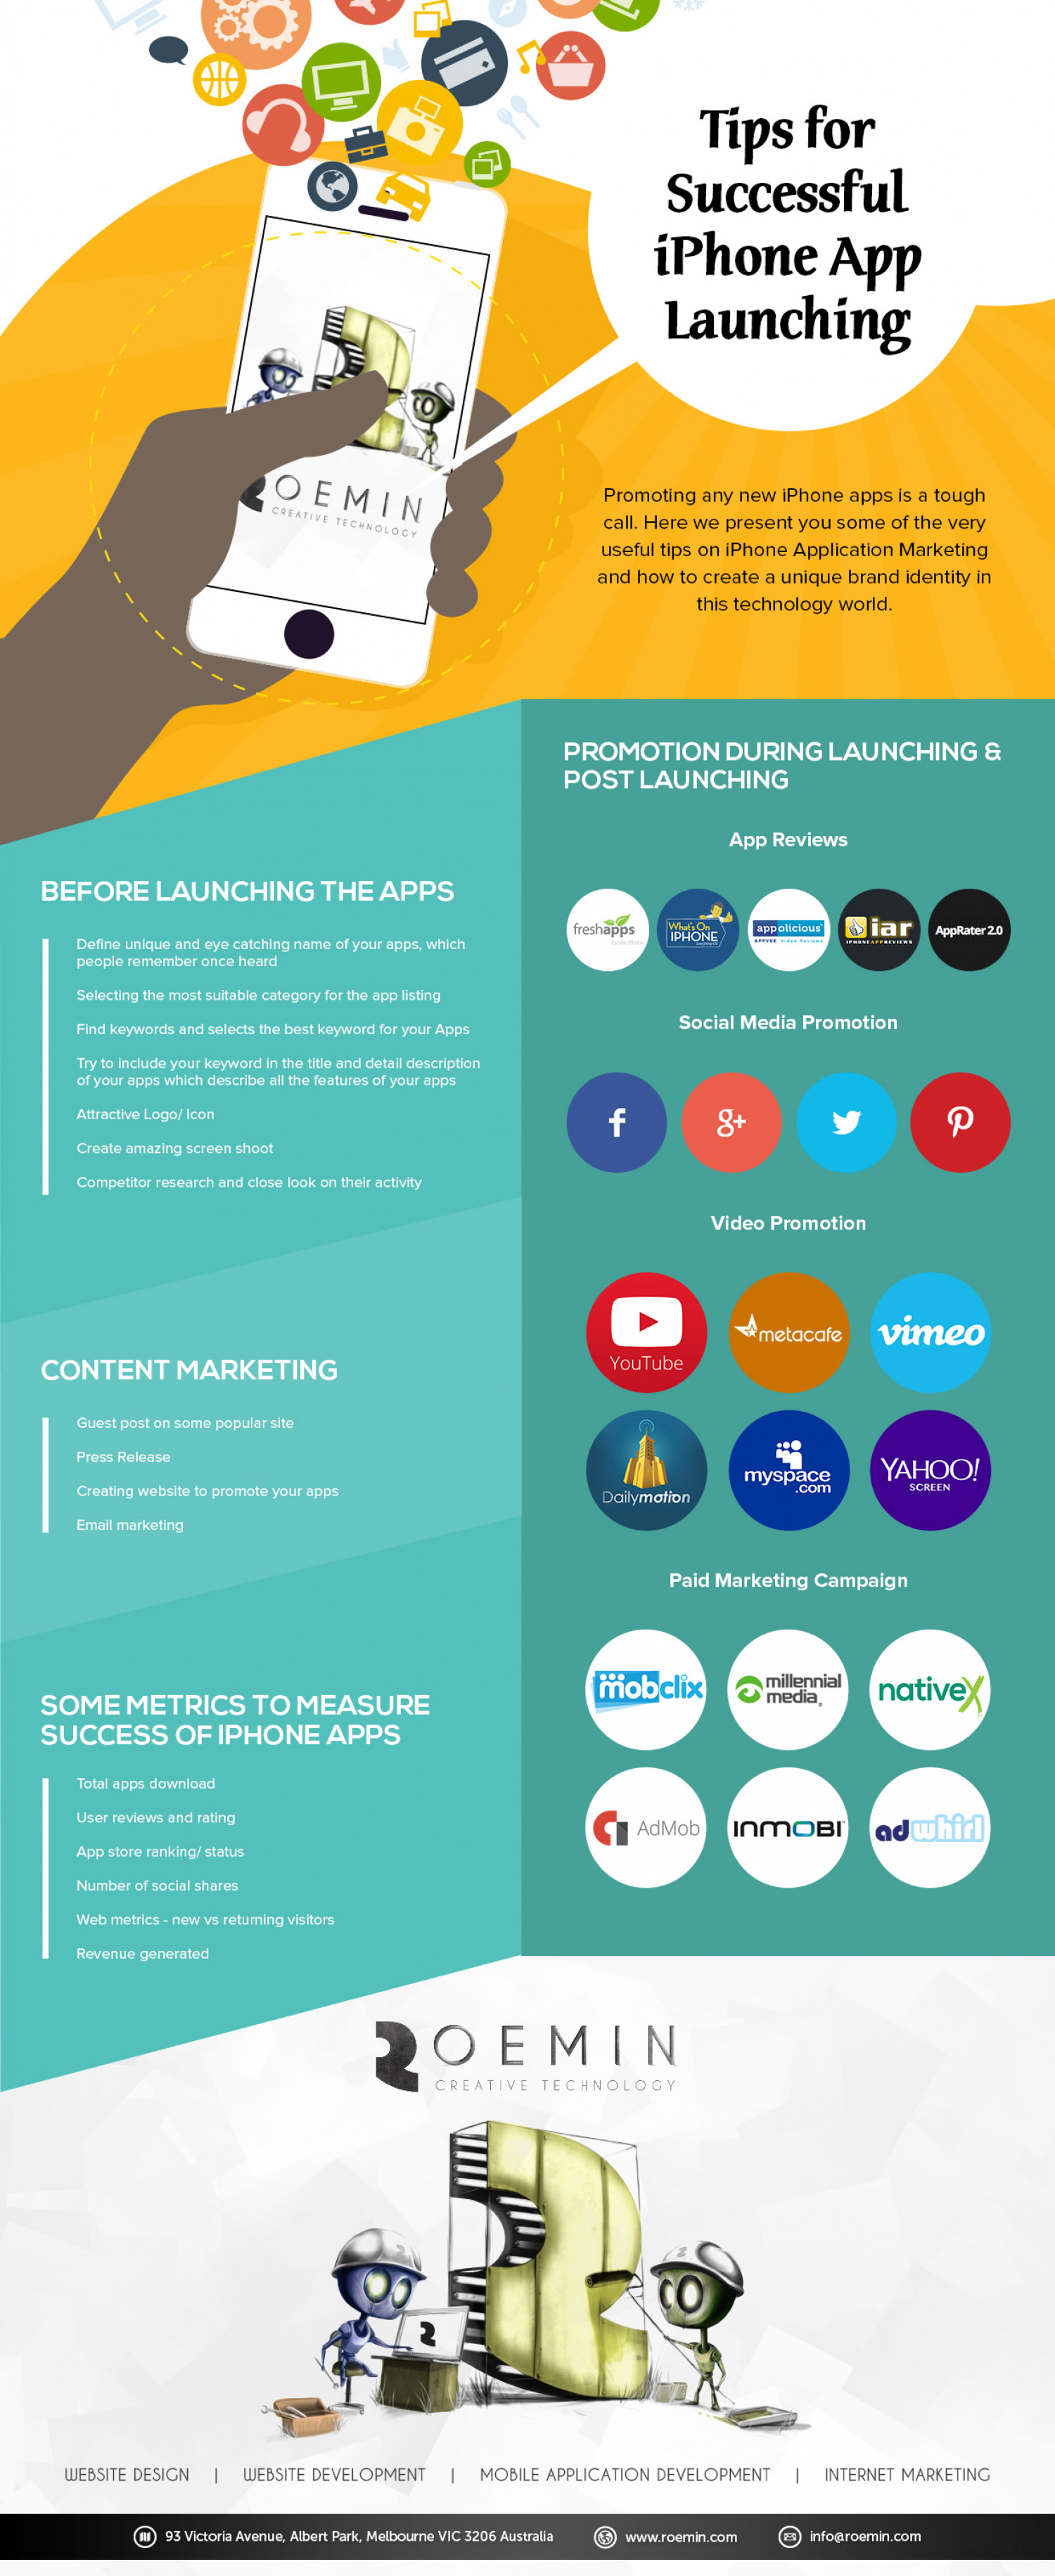 Tips for Successful Launching of iPhone Application Launching Infographic